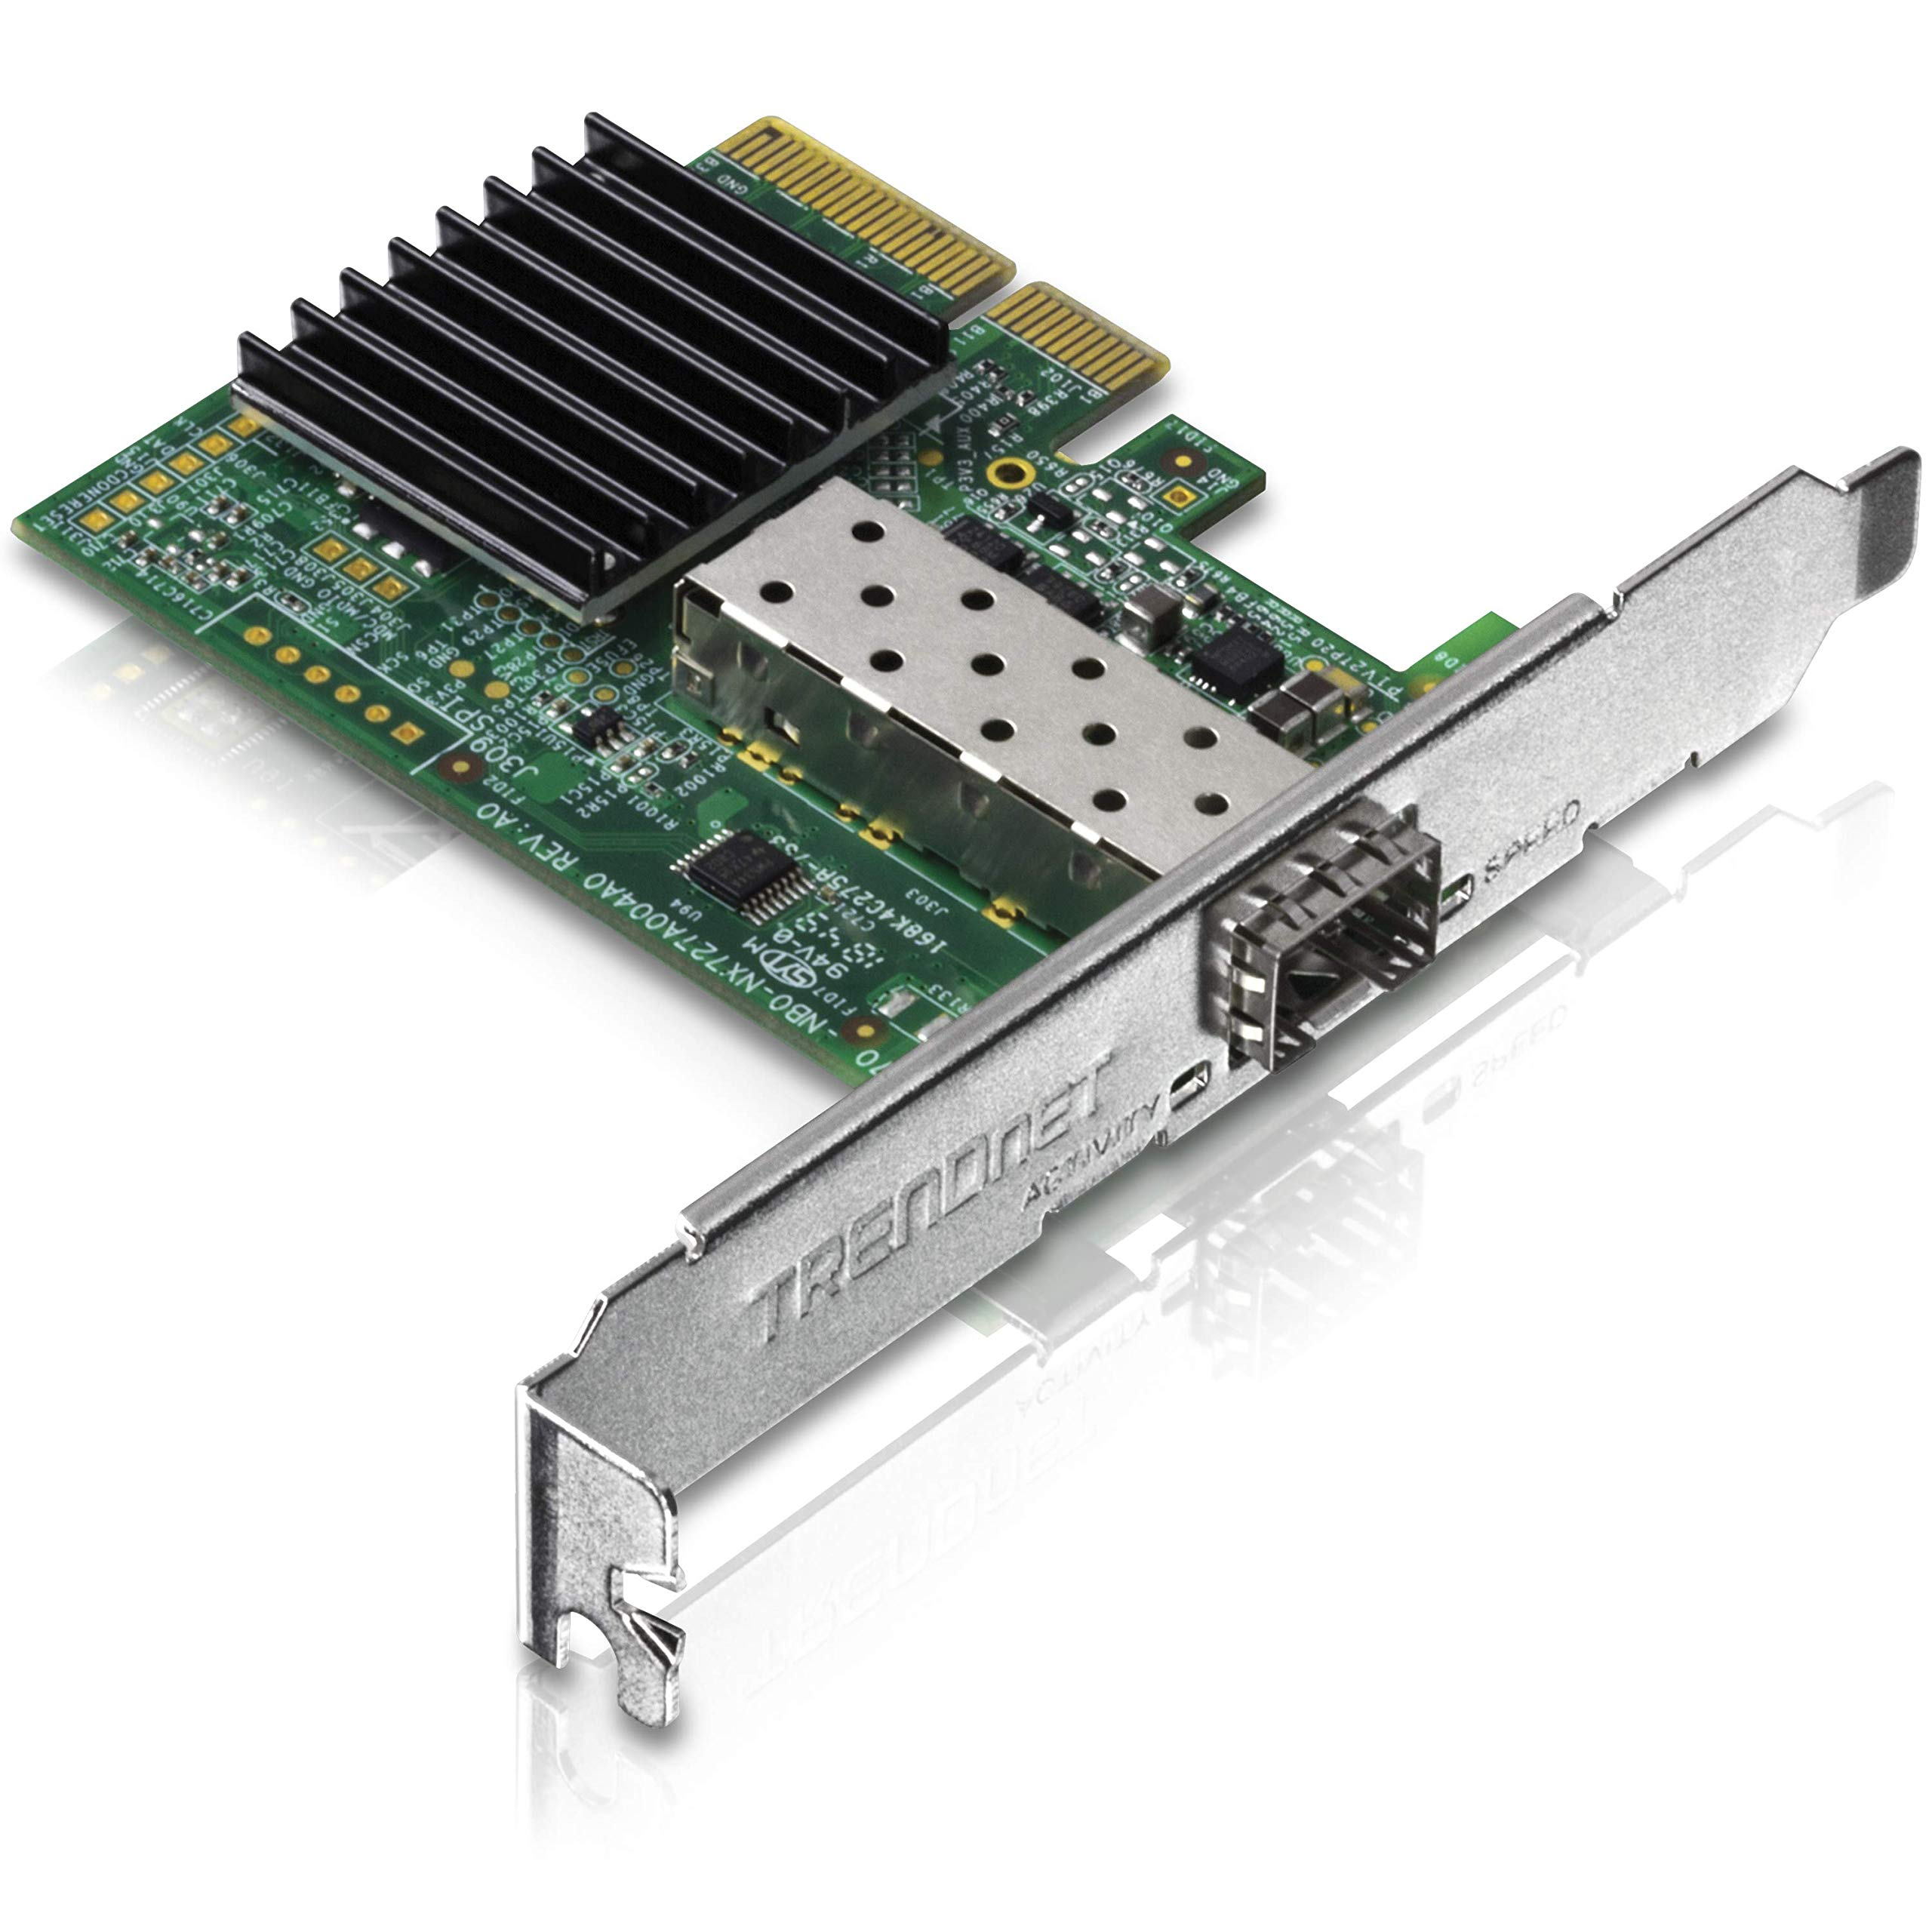 TRENDnet 10 Gigabit PCIe SFP+ Network Adapter, Standard and Low-Profile Brackets Included, TEG-10GECSFP by TRENDnet